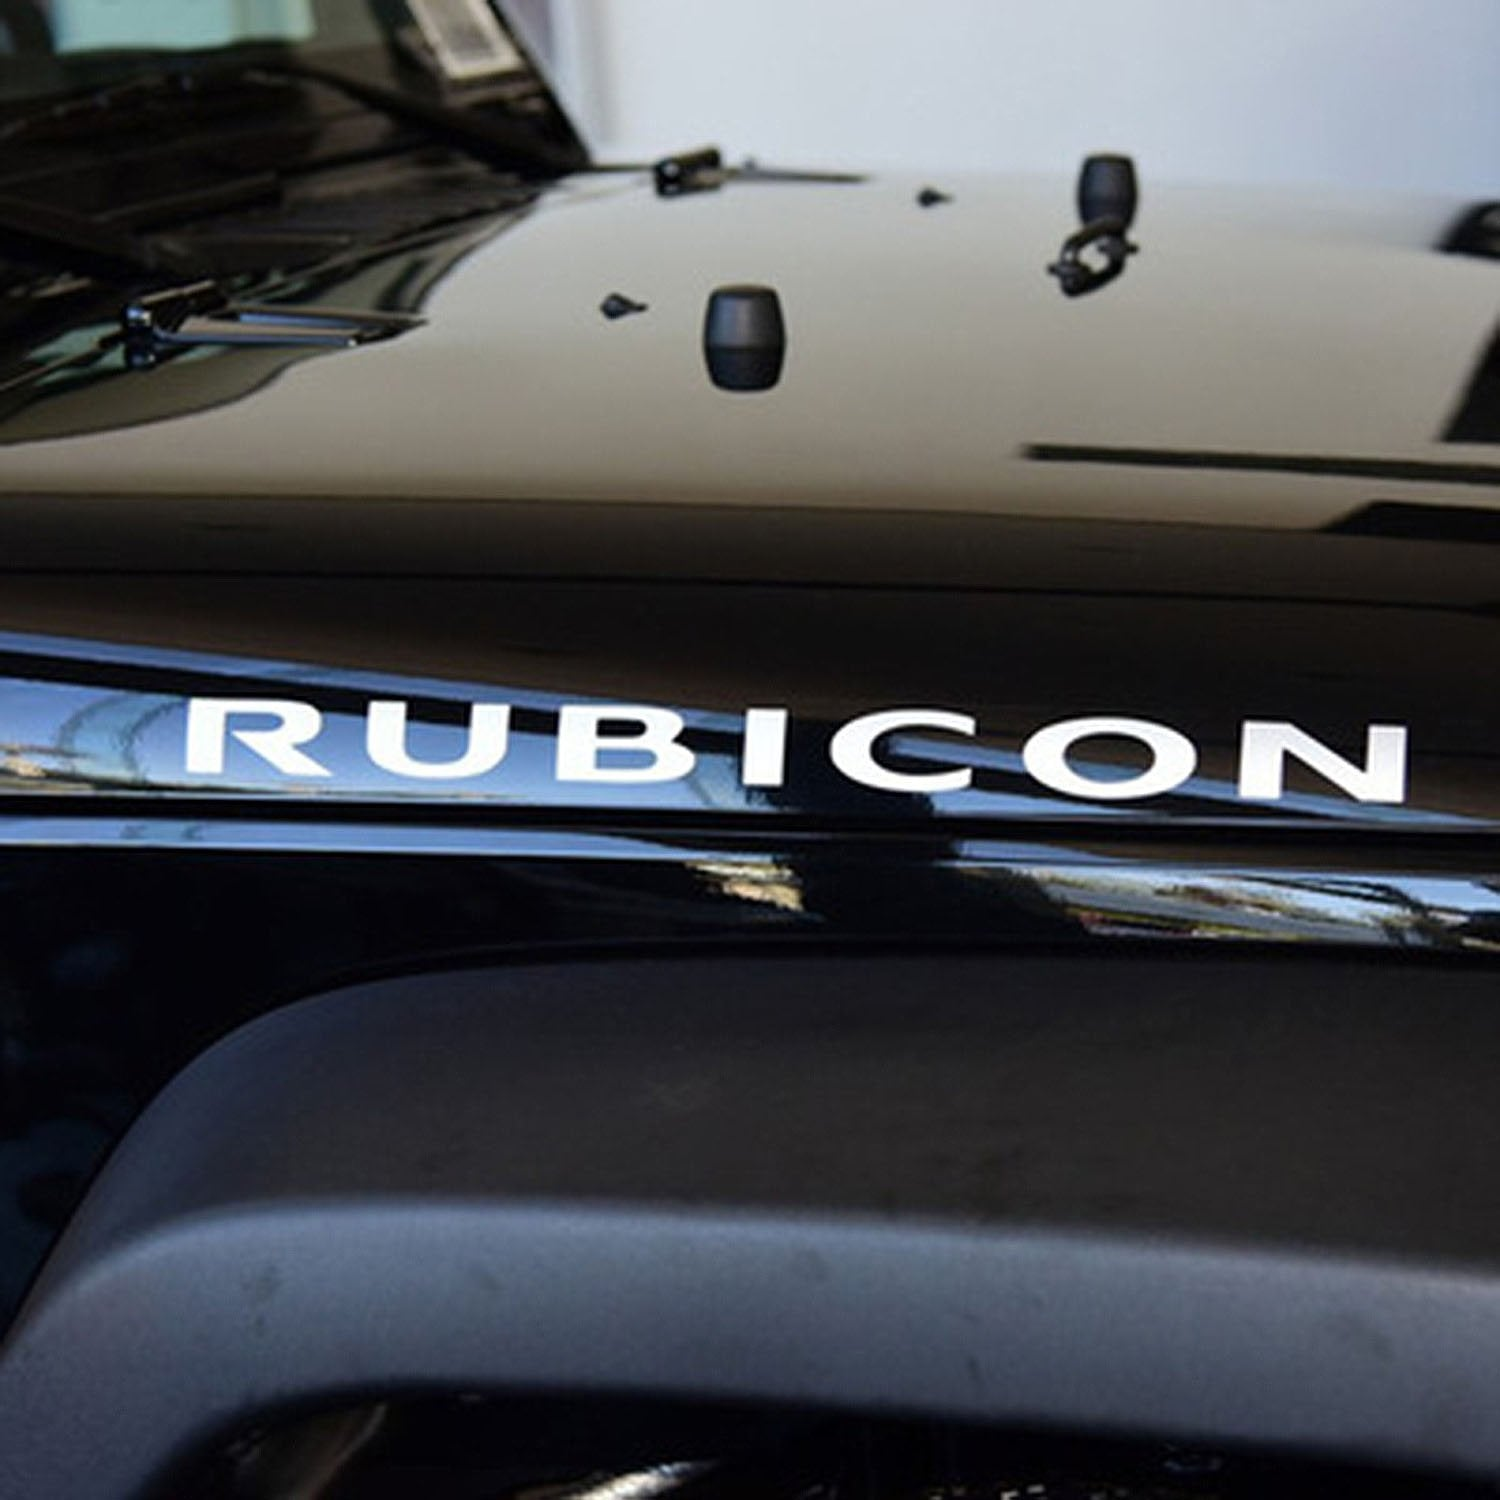 1 Pair Black Red Jeep Wrangler Rubicon Hood Decal Exterior Accessories Bumper Stickers Decals Magnets